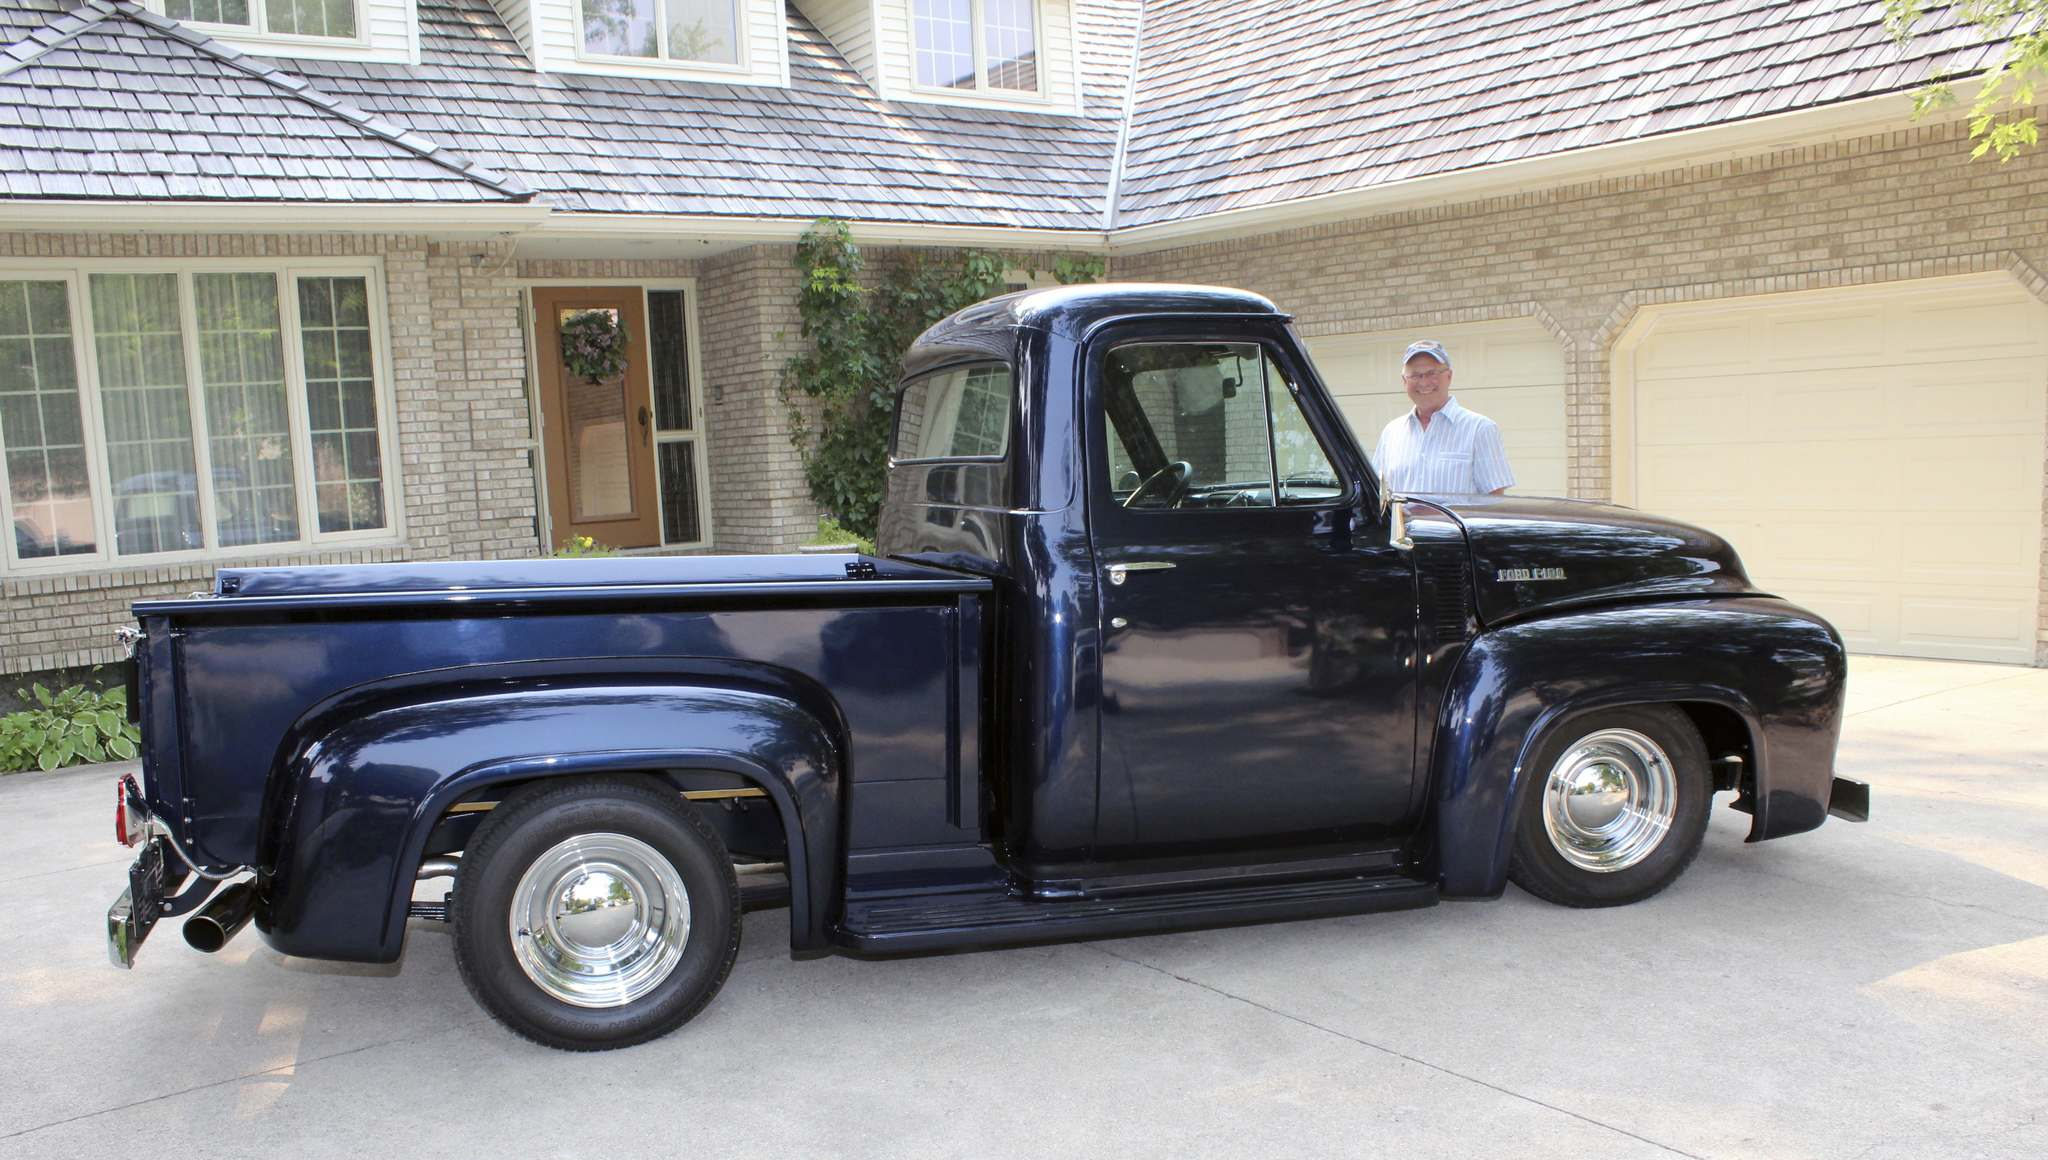 Elden Wittmier with his 1953 Ford F-100 pickup. He originally purchased the truck used in 1970, the year he turned 16.